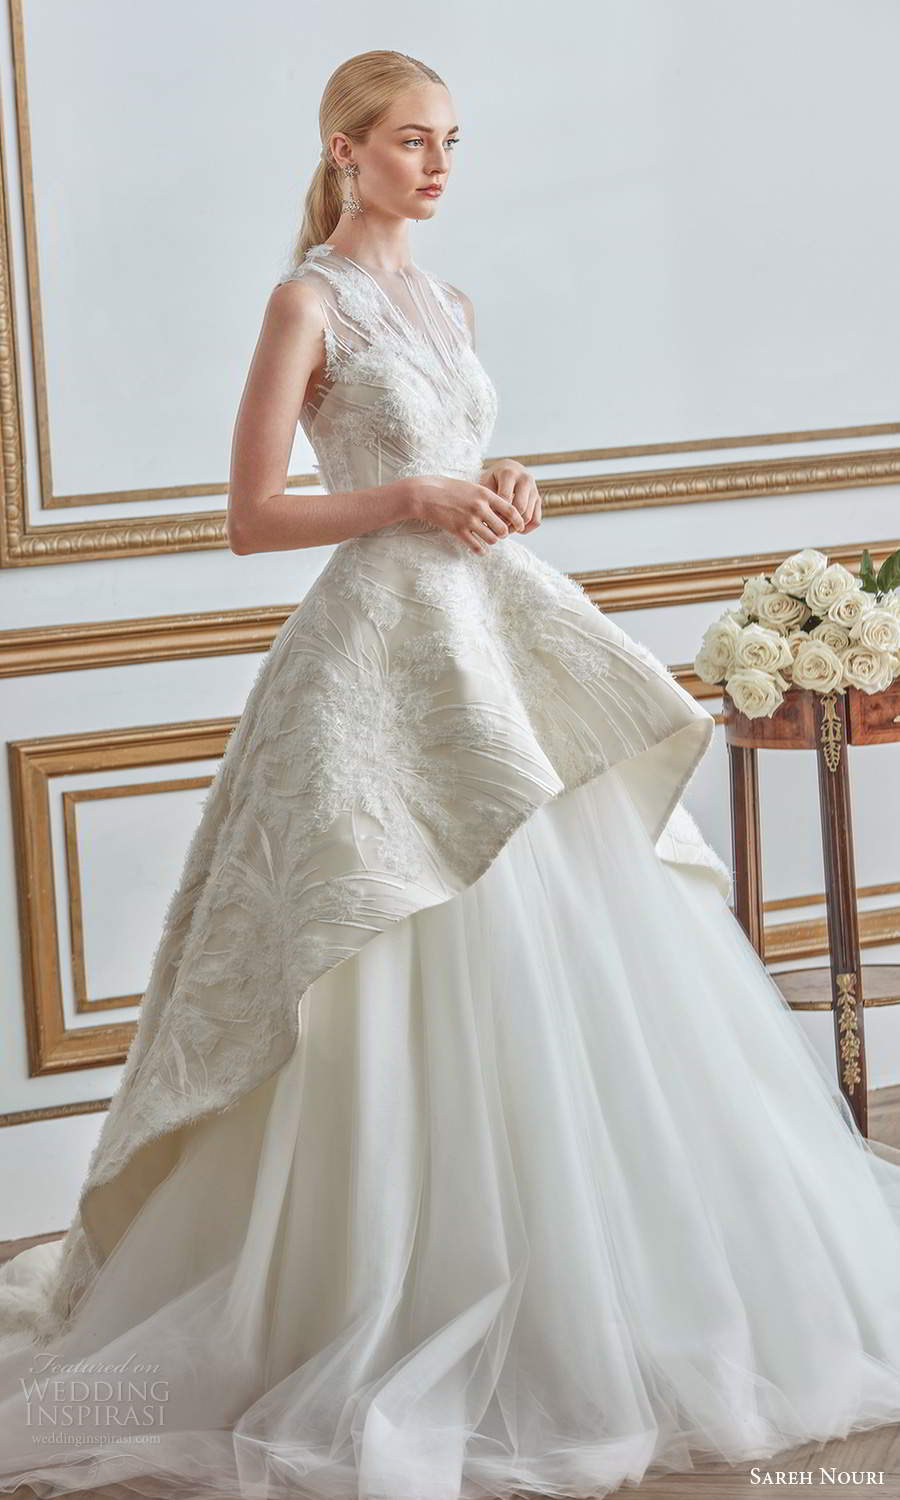 sareh nouri fall 2021 bridal sleeveless illusion jewel neck sweetheart neckline embellished bodice a line ball gown wedding dress tiered skirt chapel train (7) mv